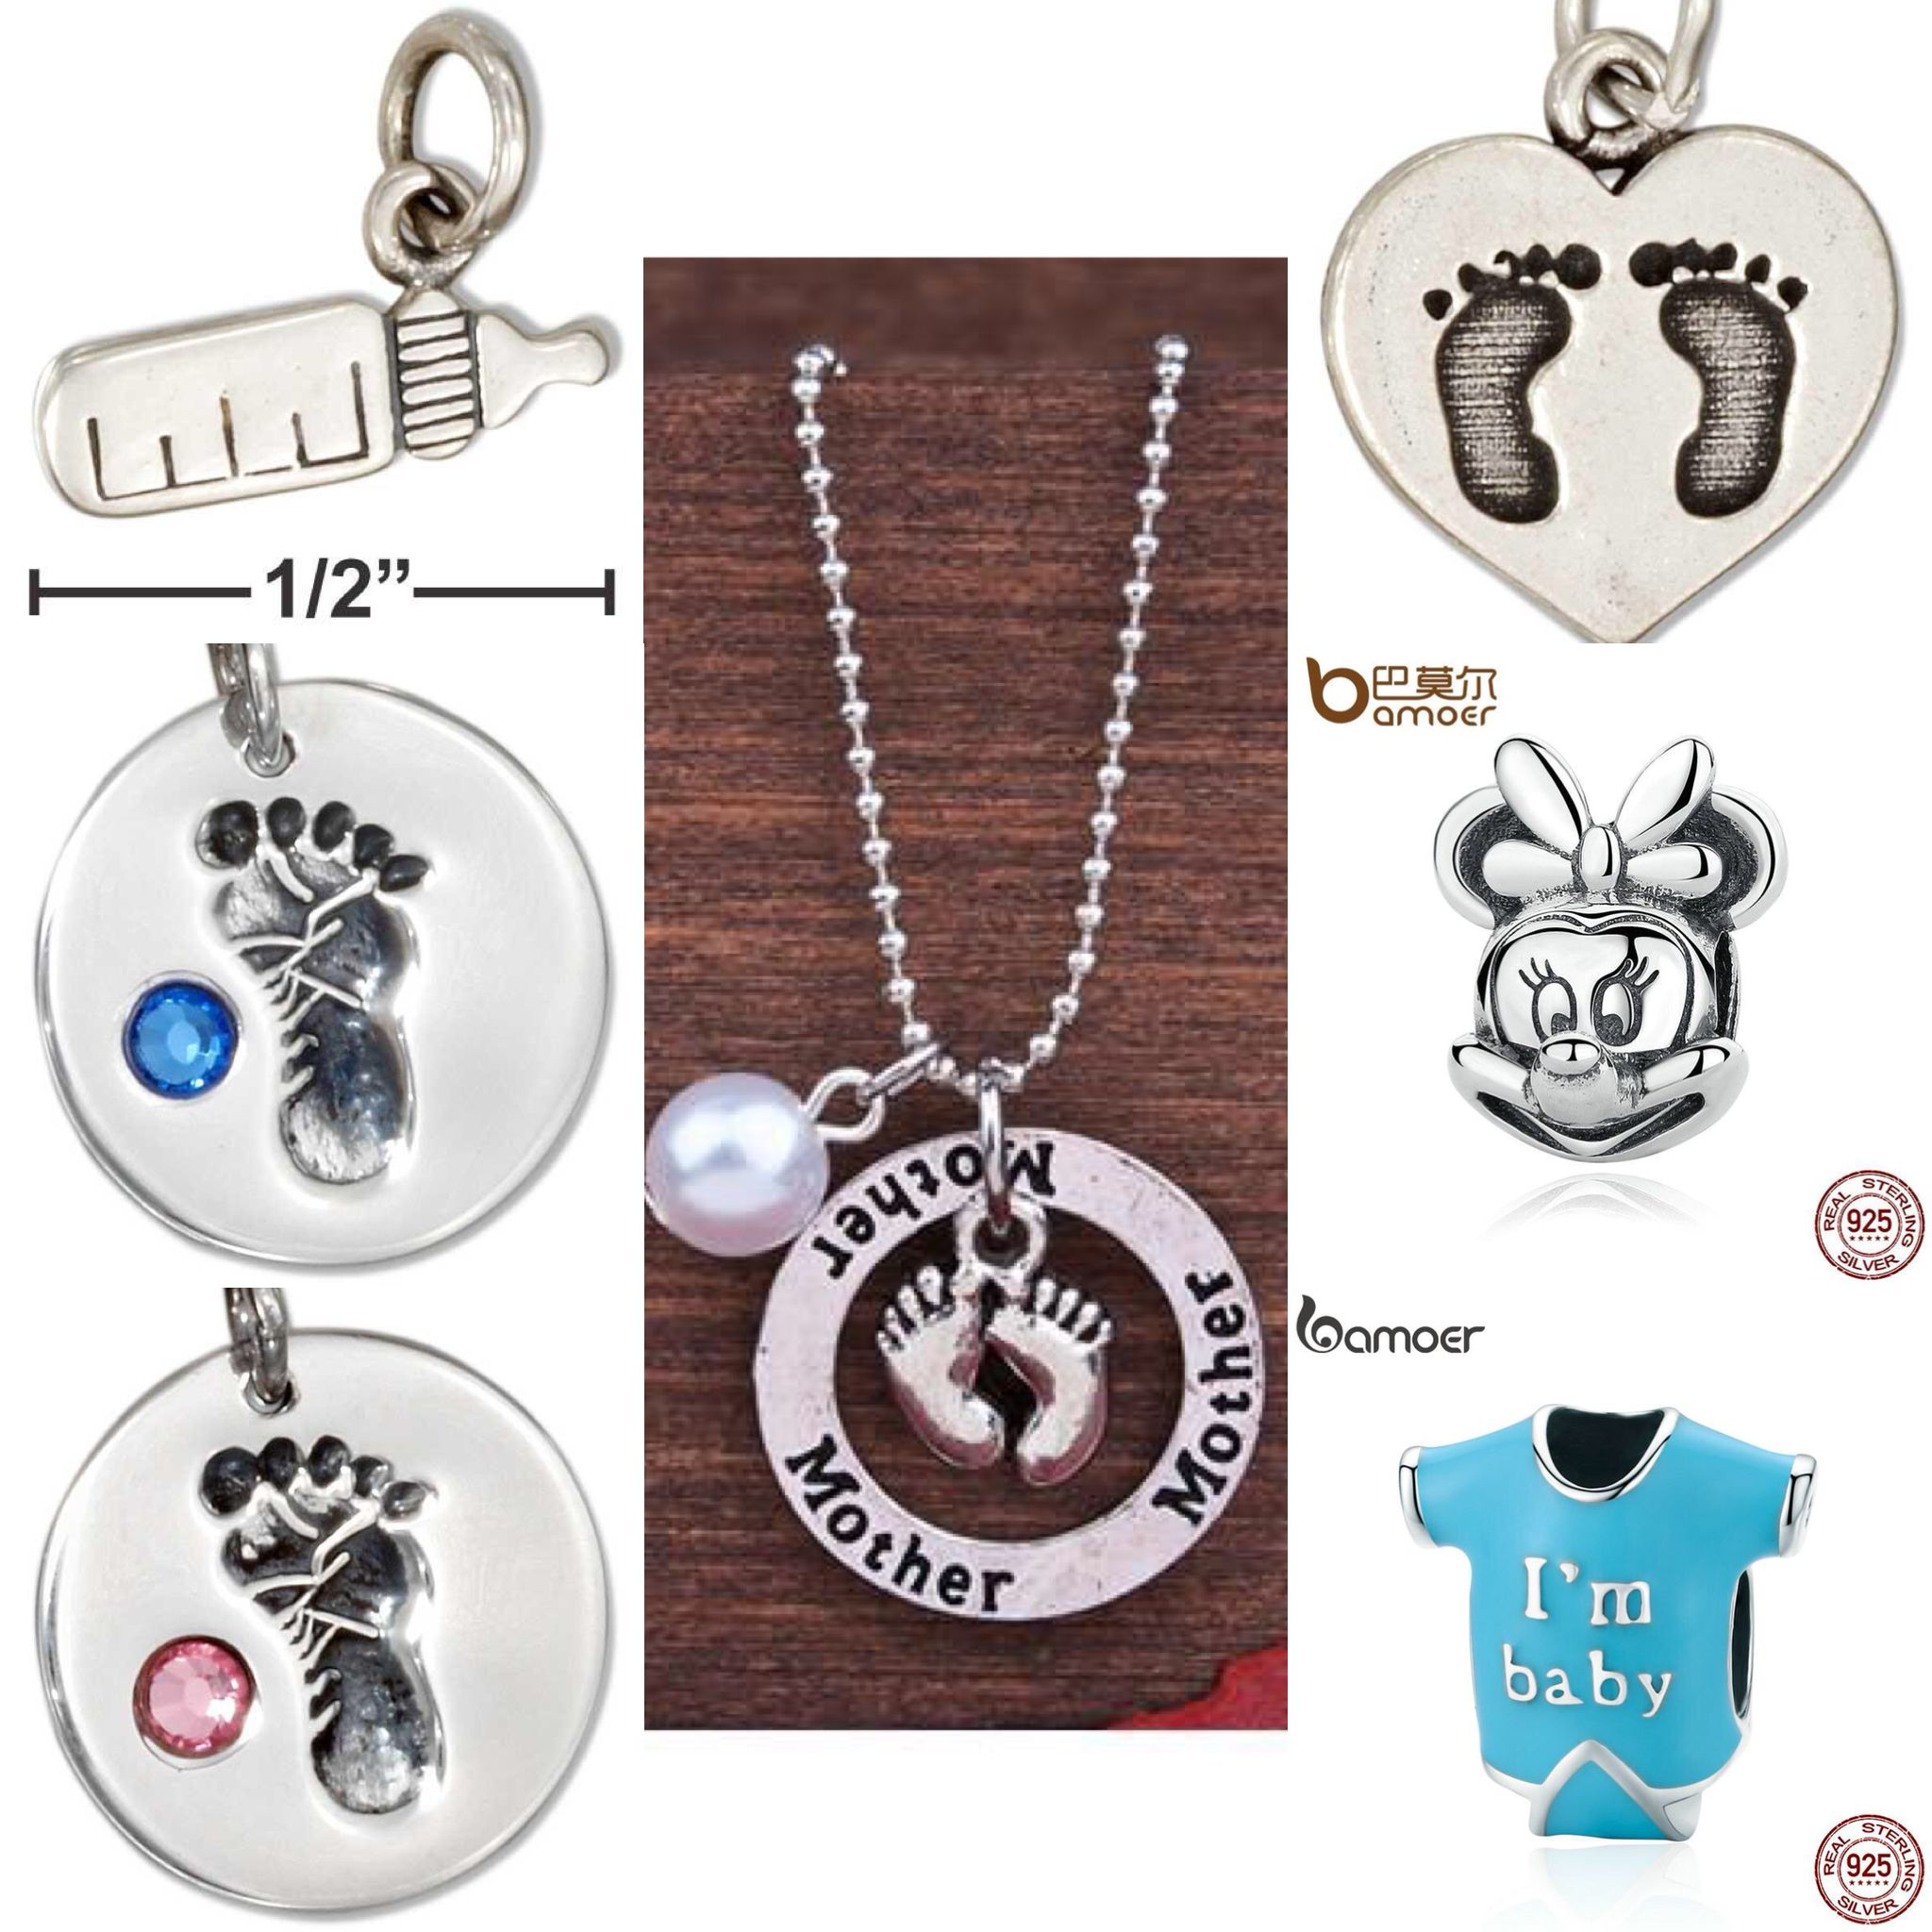 Amazing baby jewelry at sleeplilbaby.com just for you ...